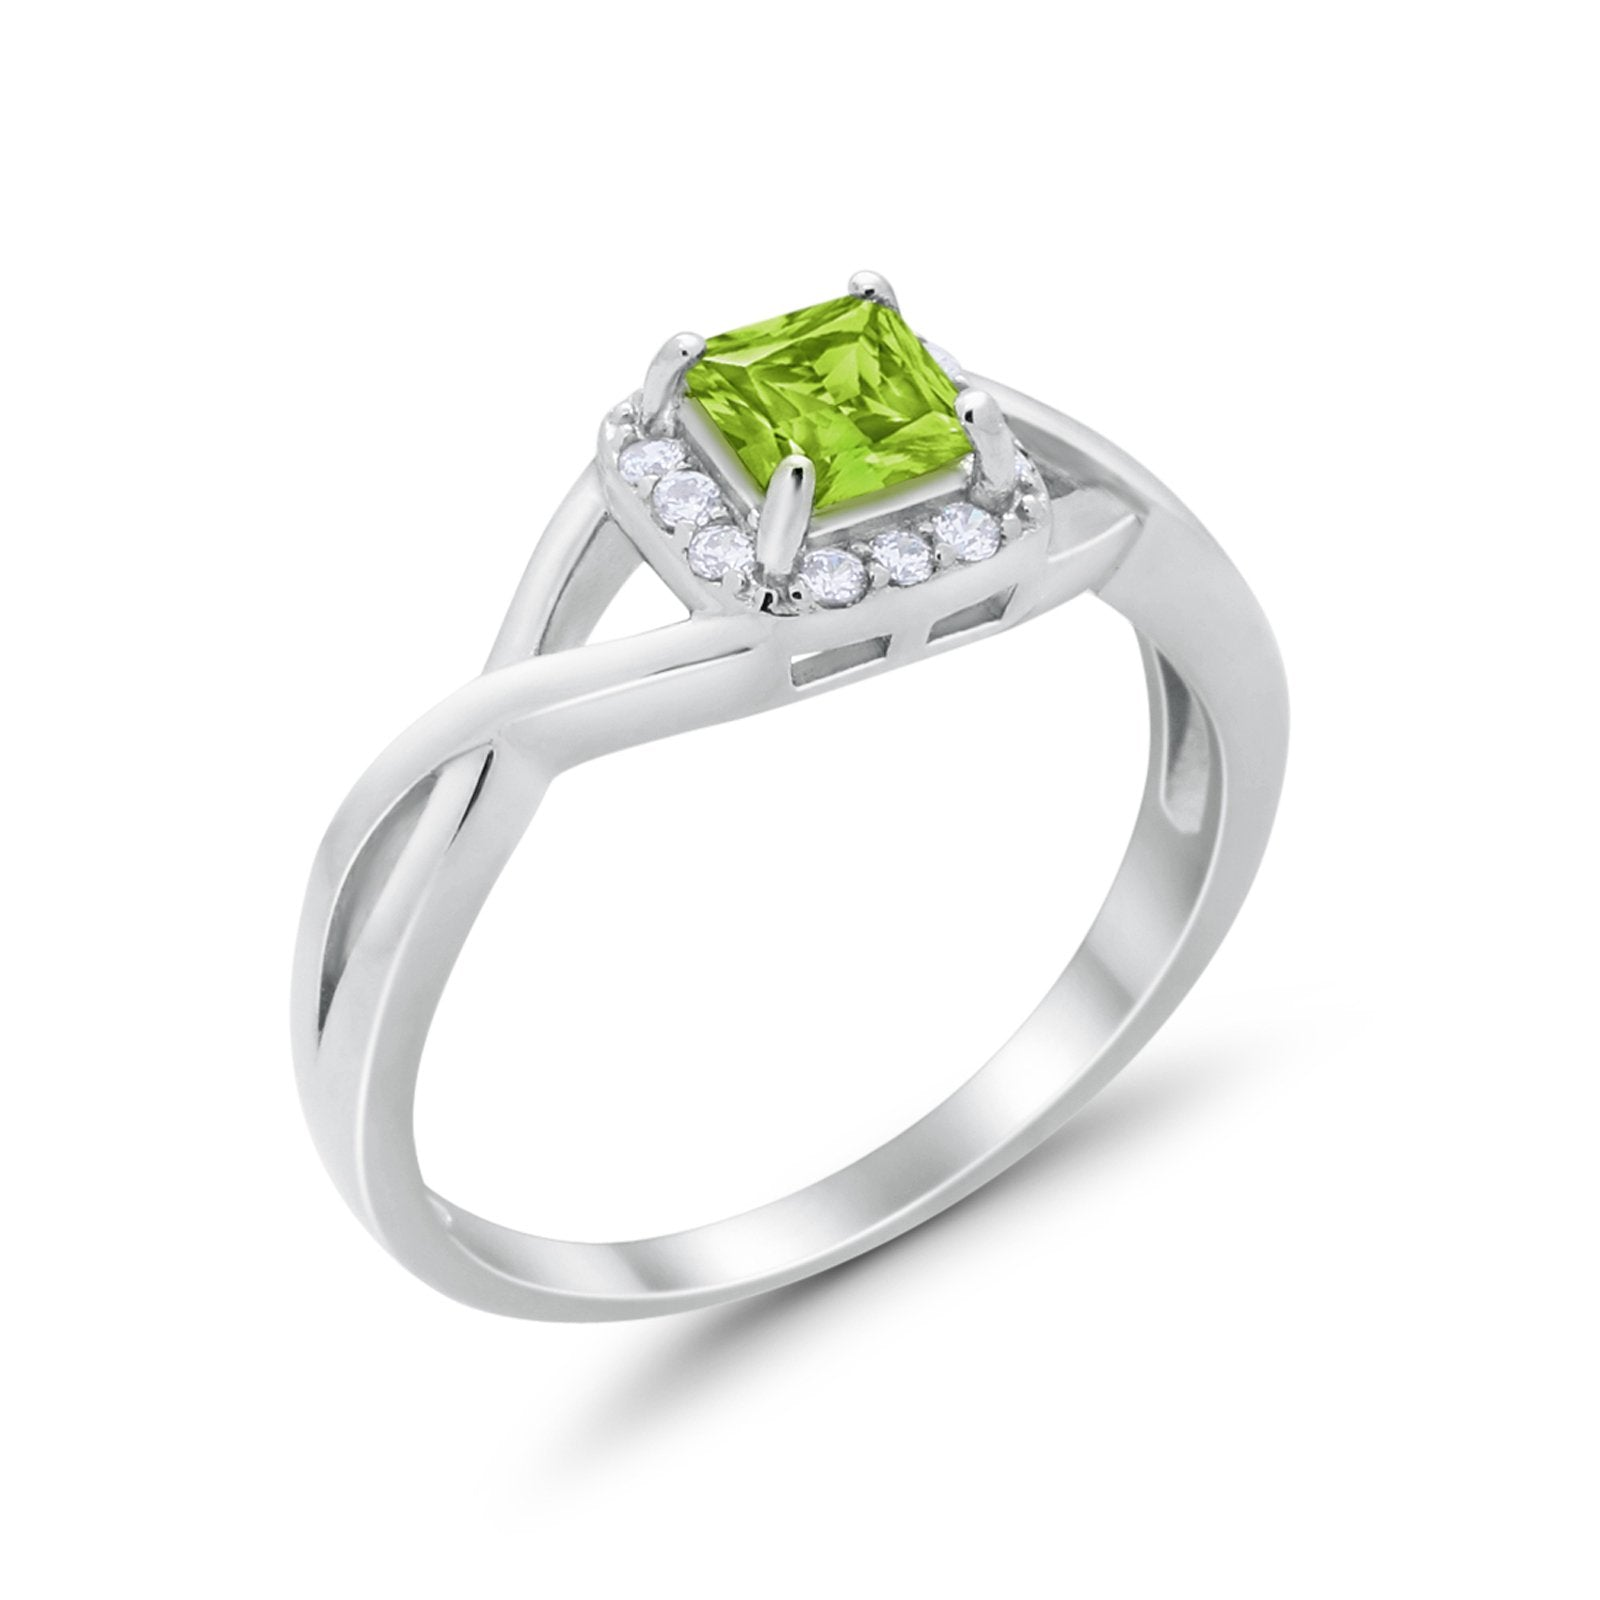 Solitaire Infinity Shank Ring Princess Cut Simulated Peridot CZ 925 Sterling Silver